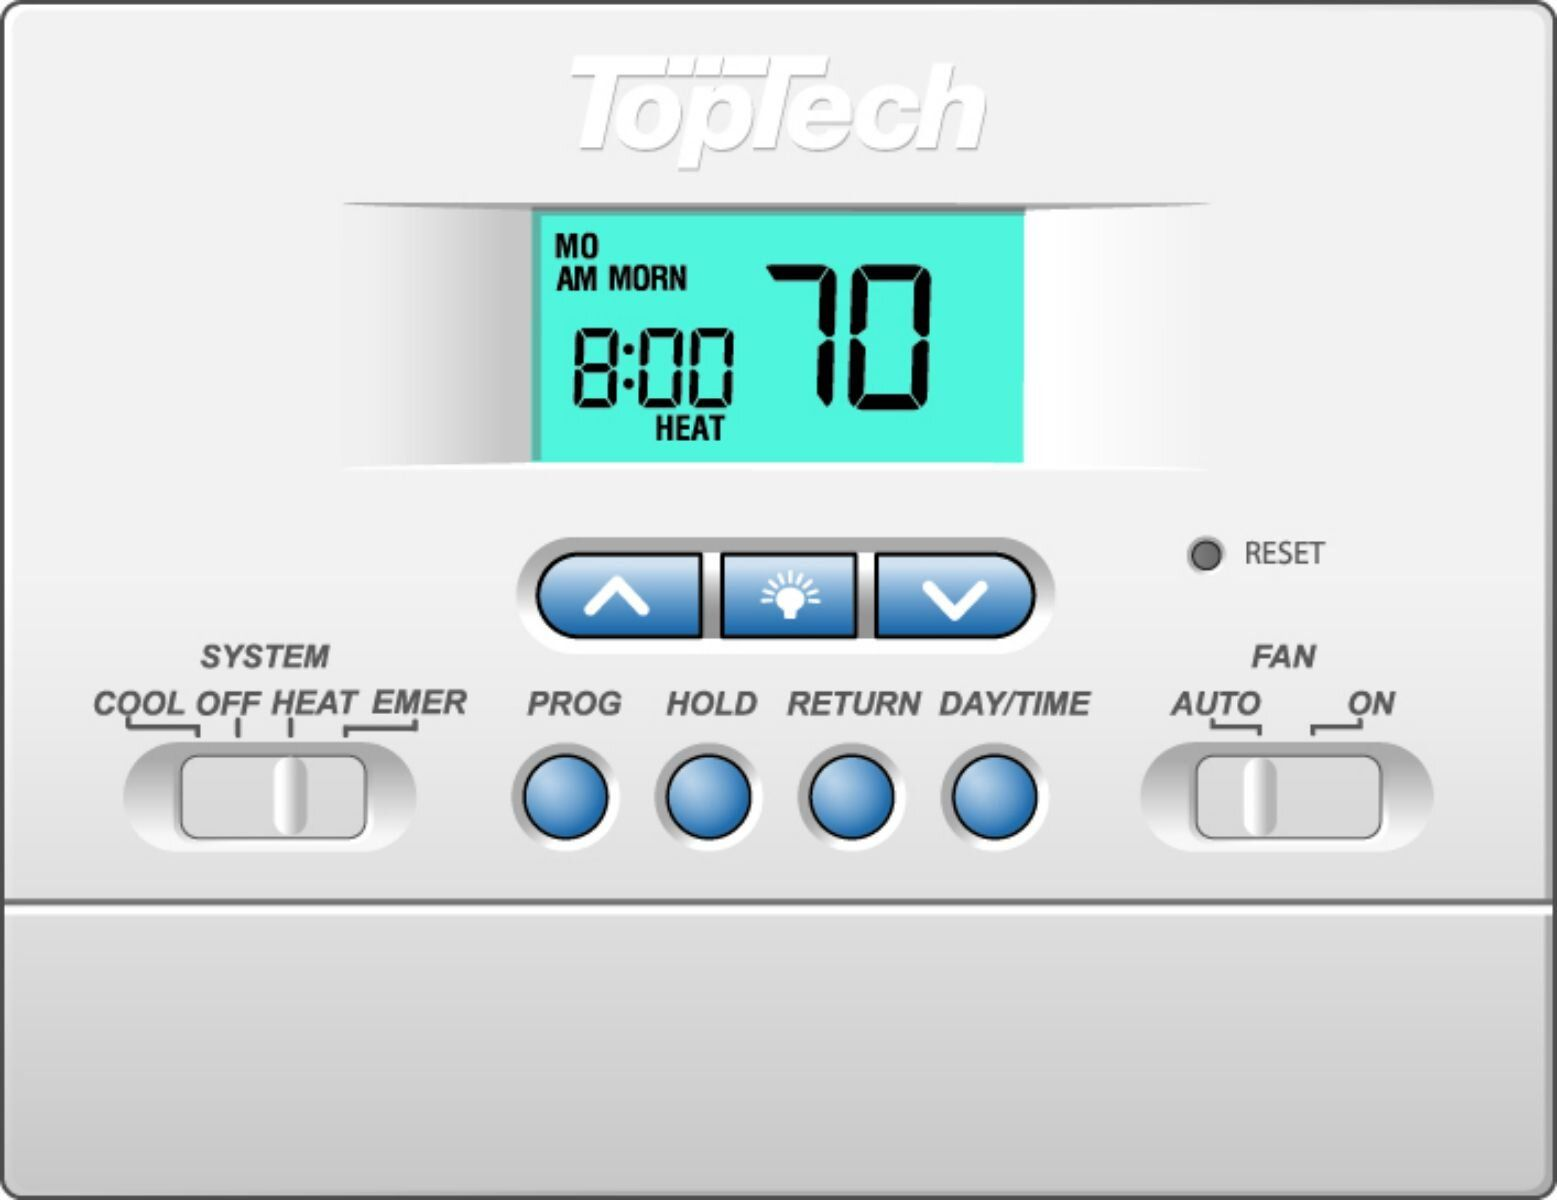 Toptech Tt P 421 5 2 Day Programmable Thermostat 2 Heat 1 Cool Diy Parts In 2020 Programmable Thermostat Thermostat Cool Stuff